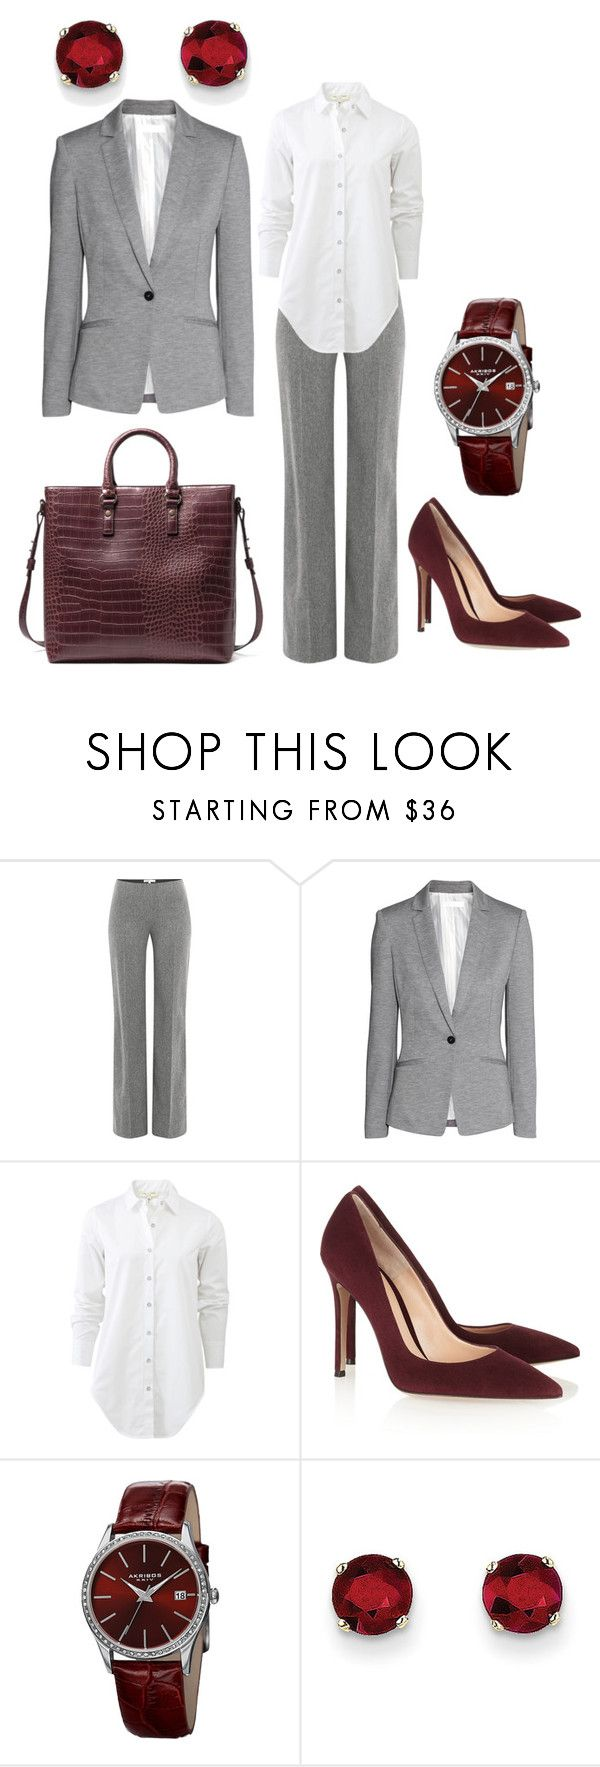 Классика Груша by gala-bell on Polyvore featuring rag & bone, H&M, Paule Ka, Gianvito Rossi, Kevin Jewelers, Akribos XXIV, women's clothing, women's fashion, women and female